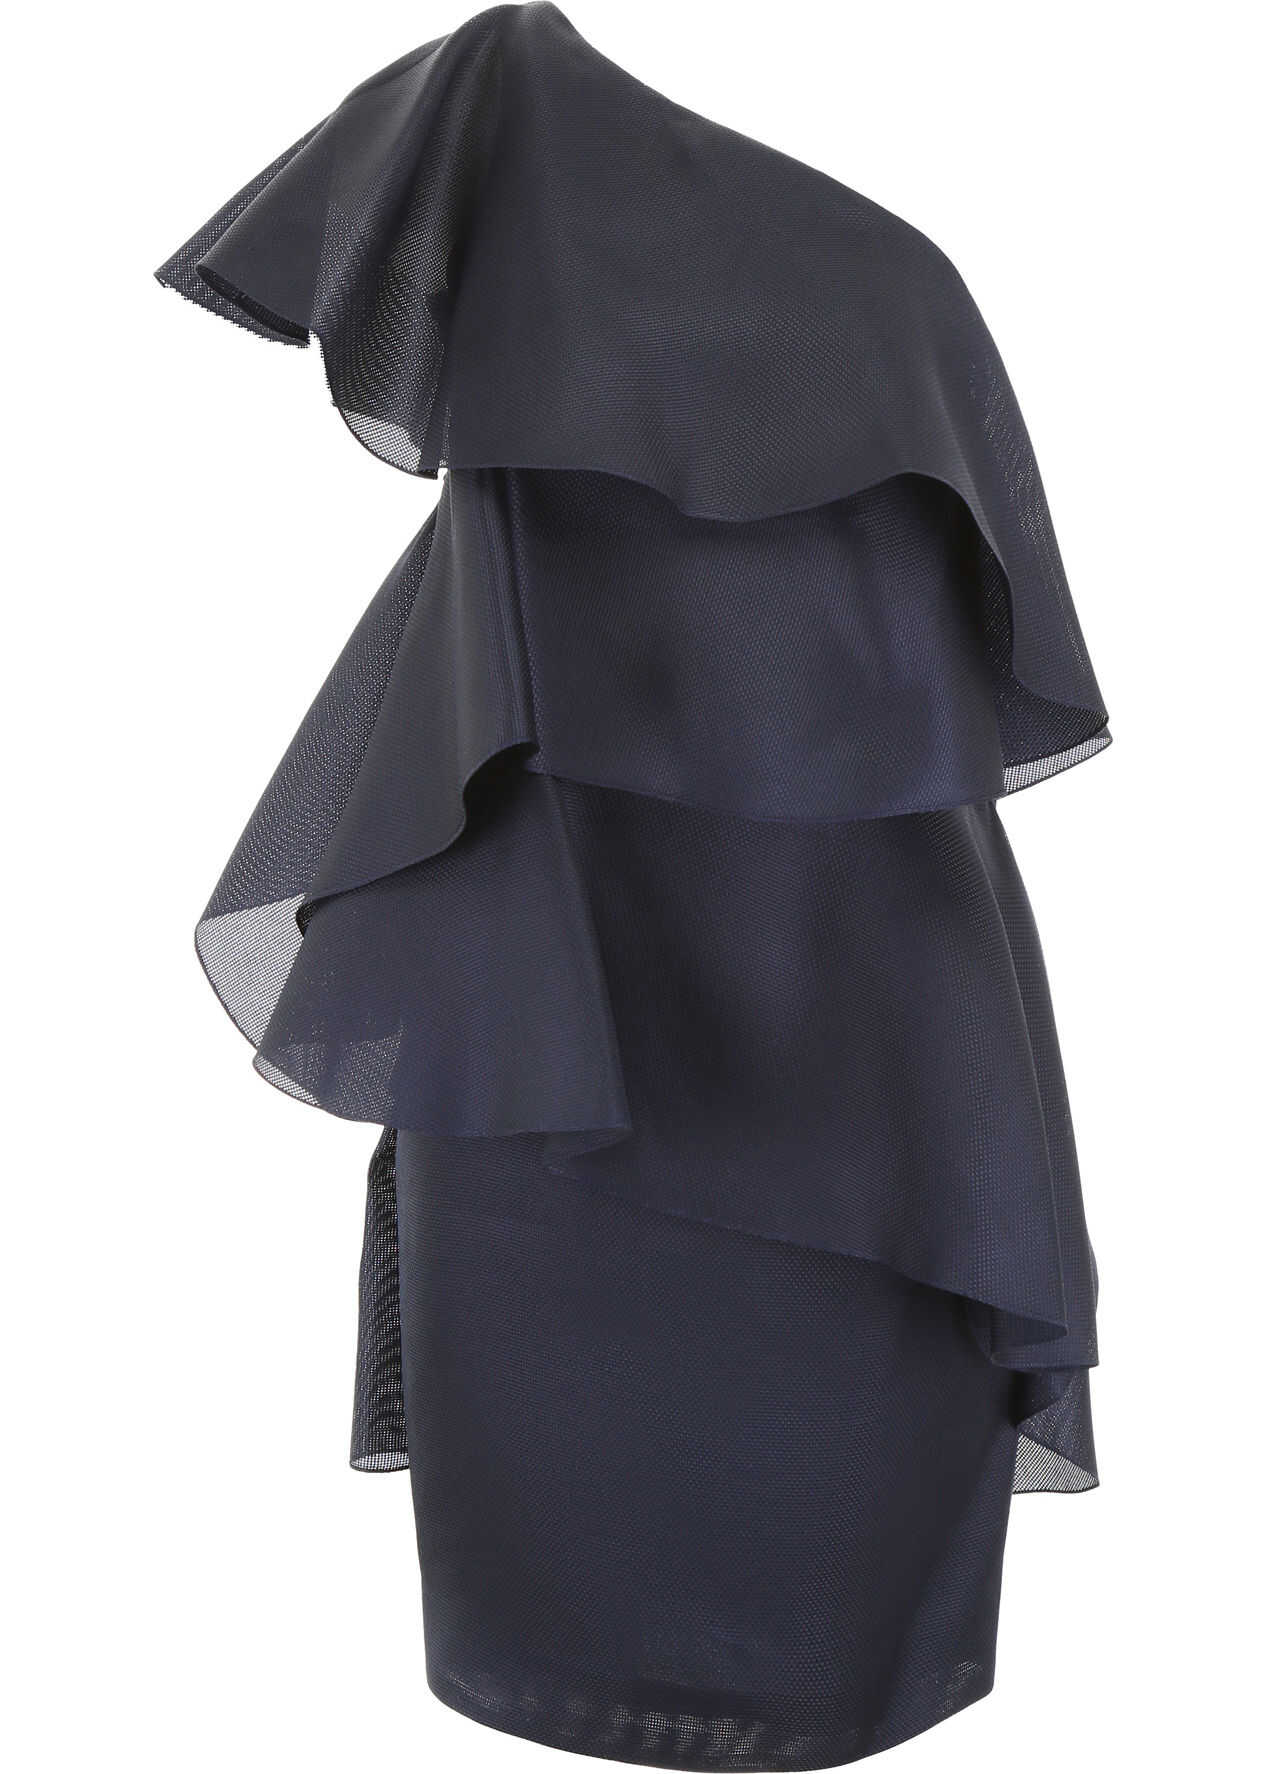 Lanvin Ruffled Dress NAVY BLUE